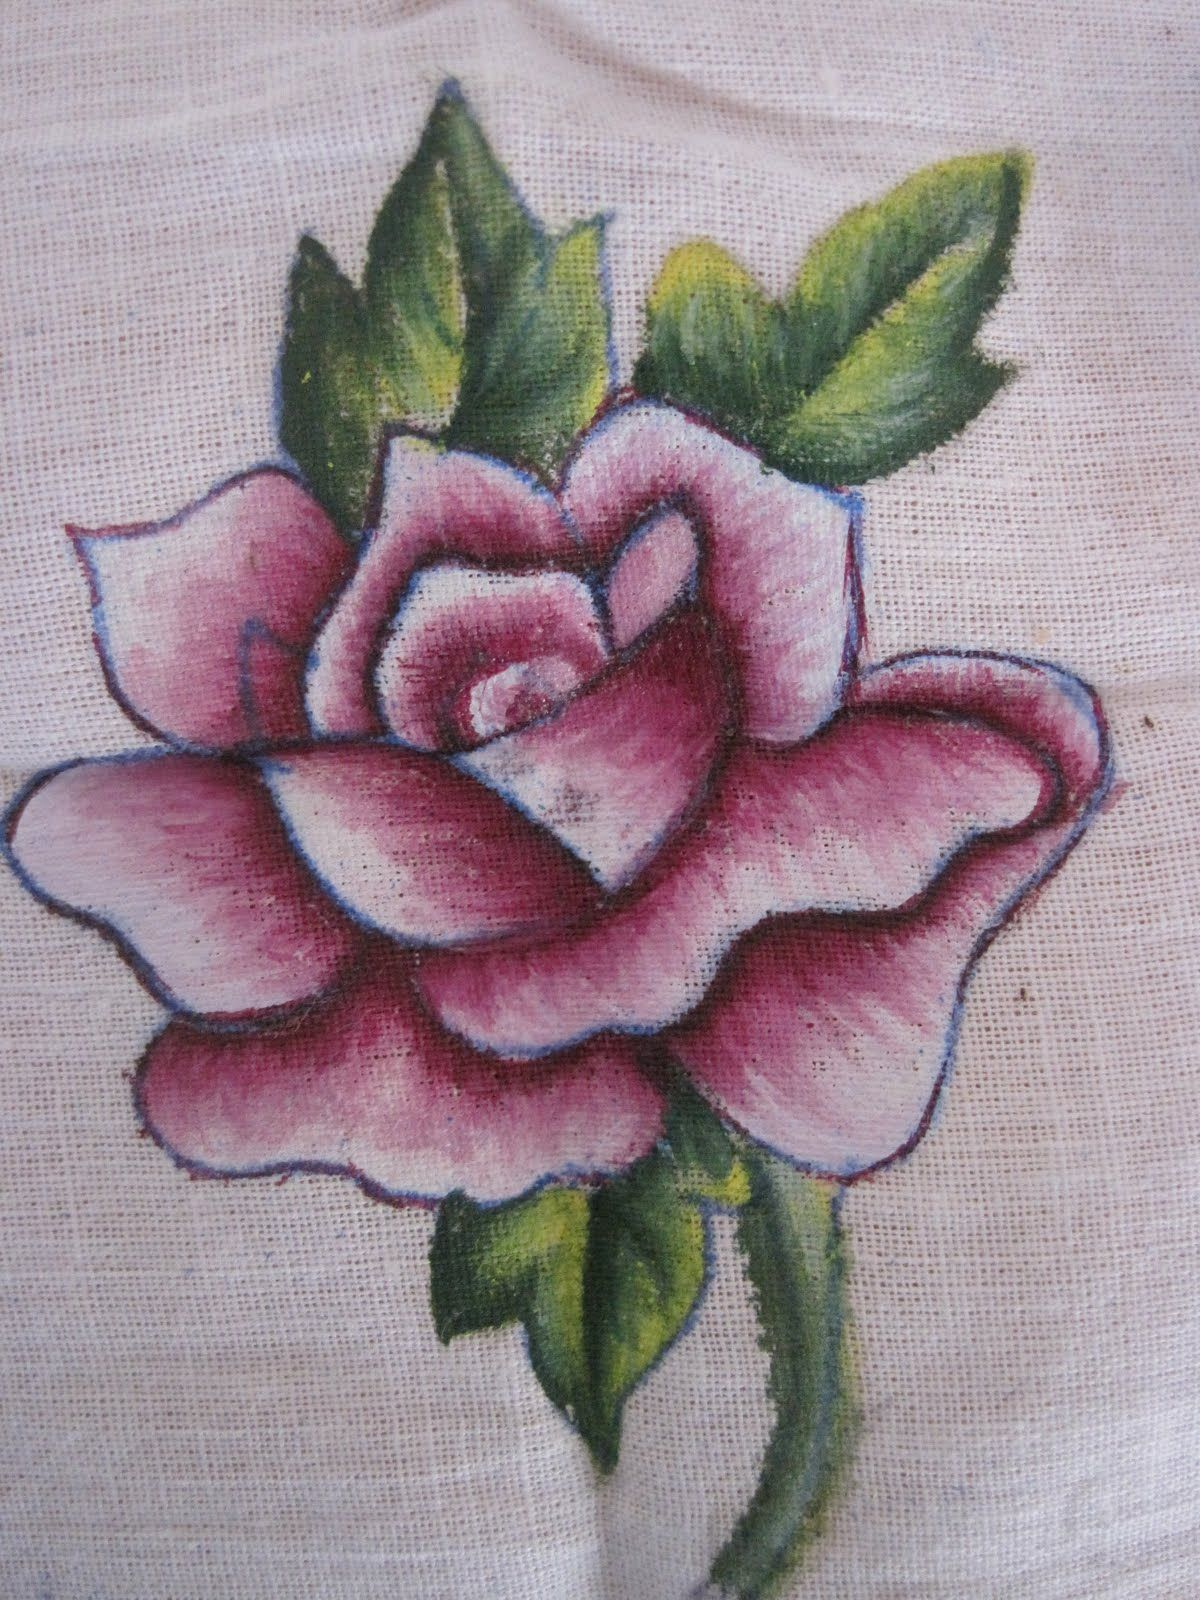 Fabric Painting Designs | Fabric Painting Designs On Handkerchiefs